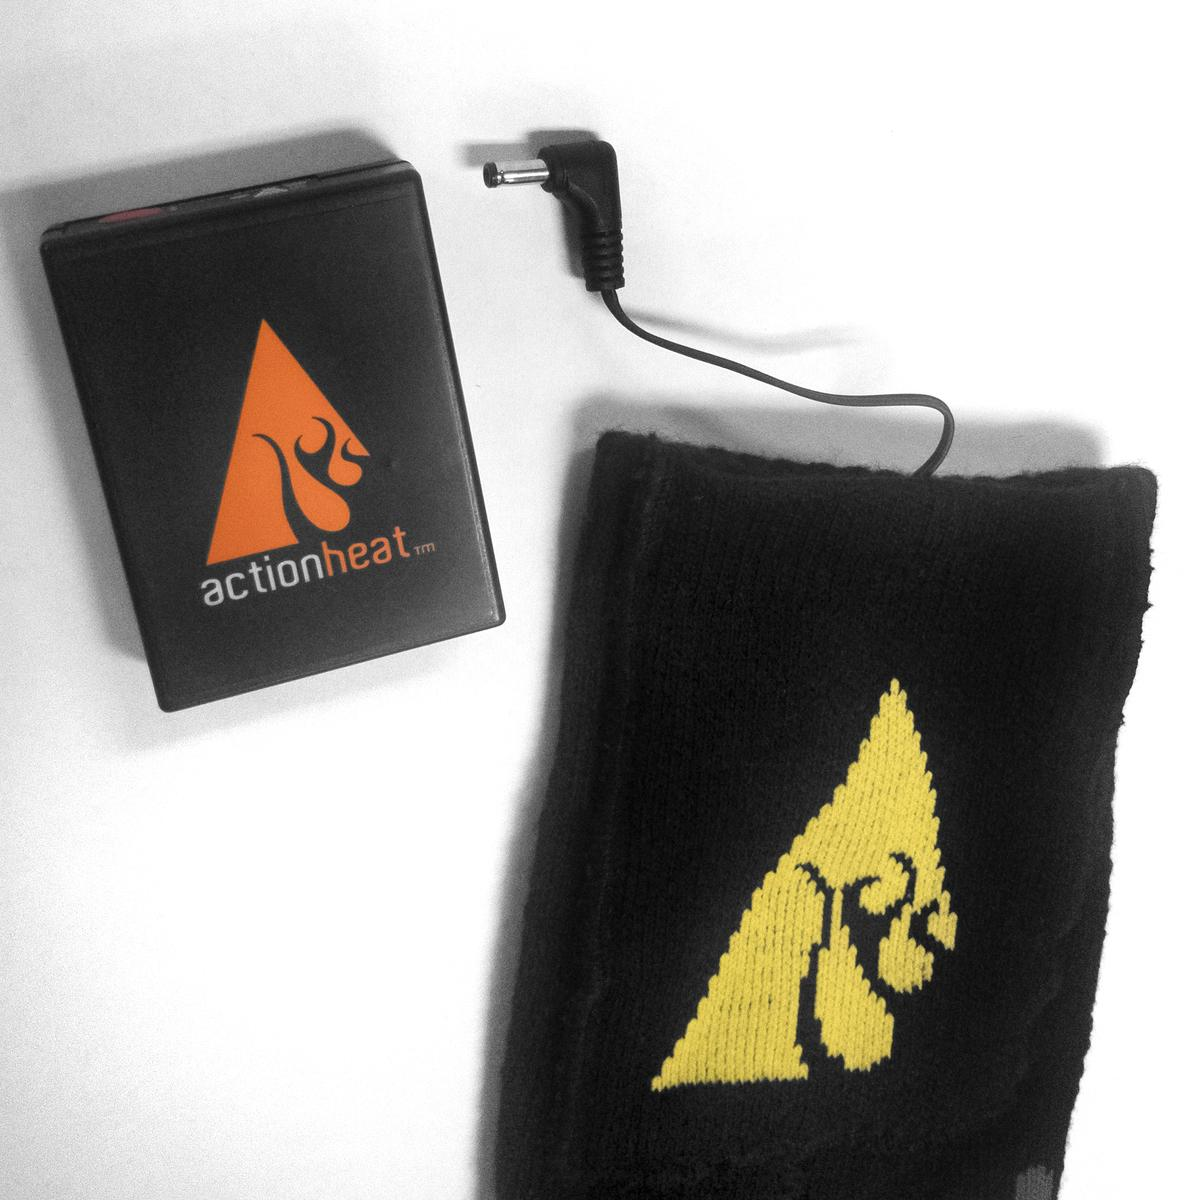 ActionHeat 3.7V Rechargeable Battery Heated Socks - Cotton - Battery